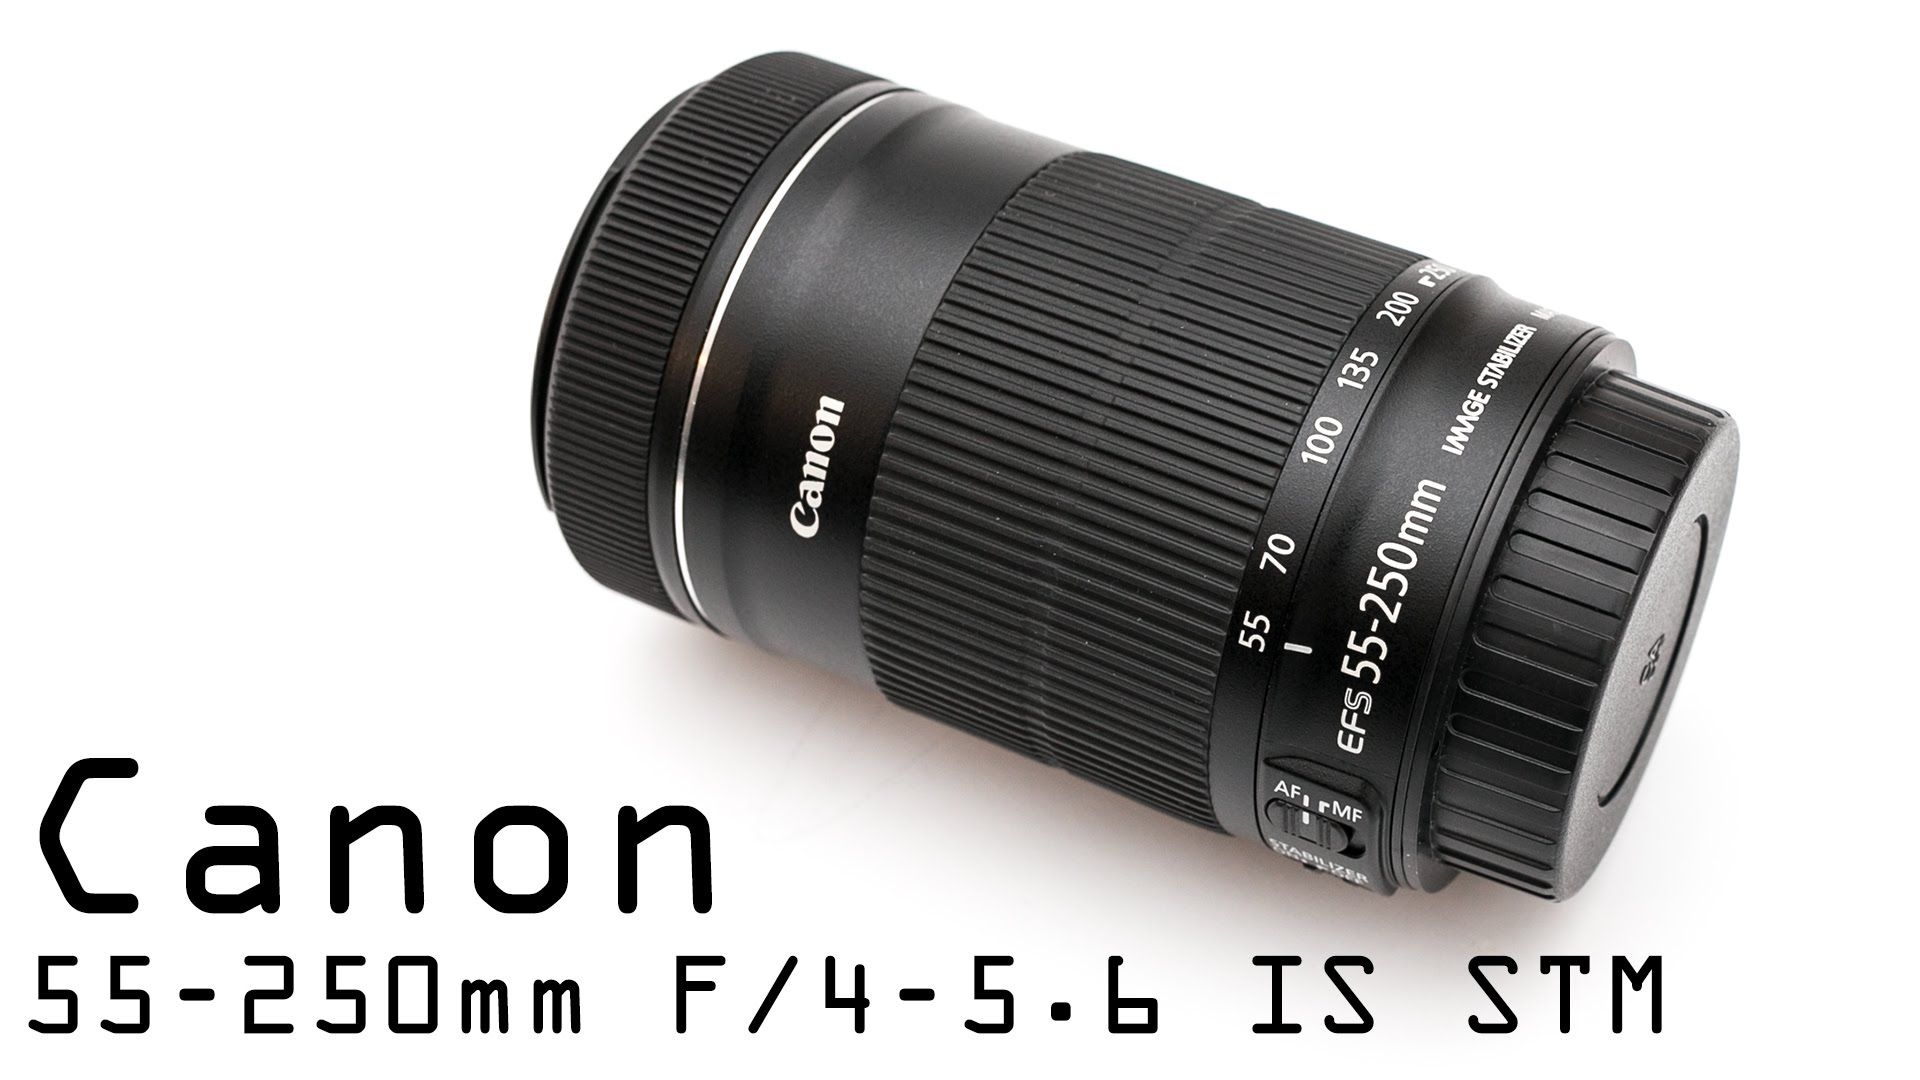 Canon Ef S 55 250 F 4 5 6 Is Stm Review Canon Ef Canon Reviews